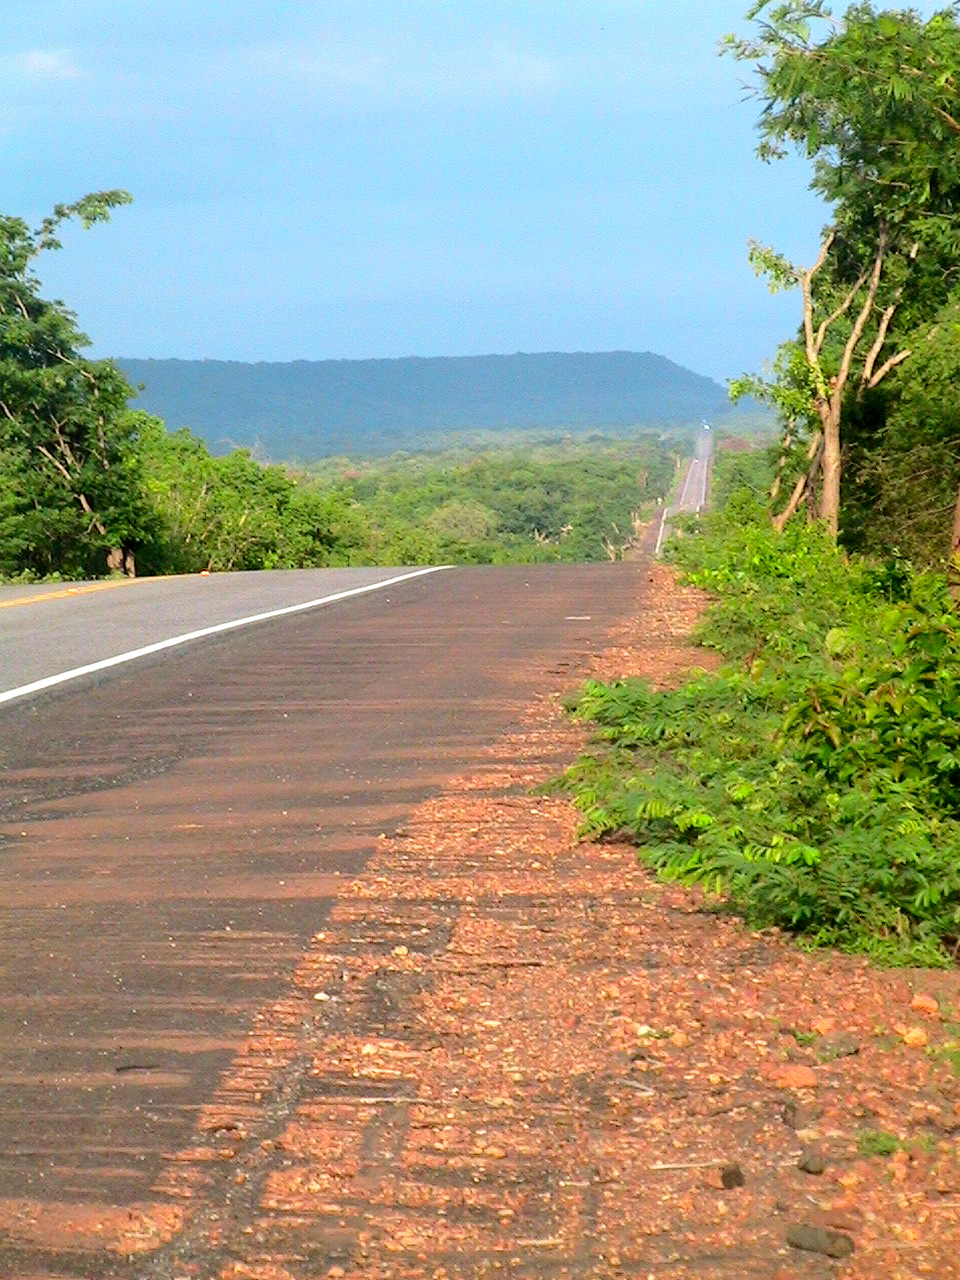 Midday on the road to Floriano, Brazil.